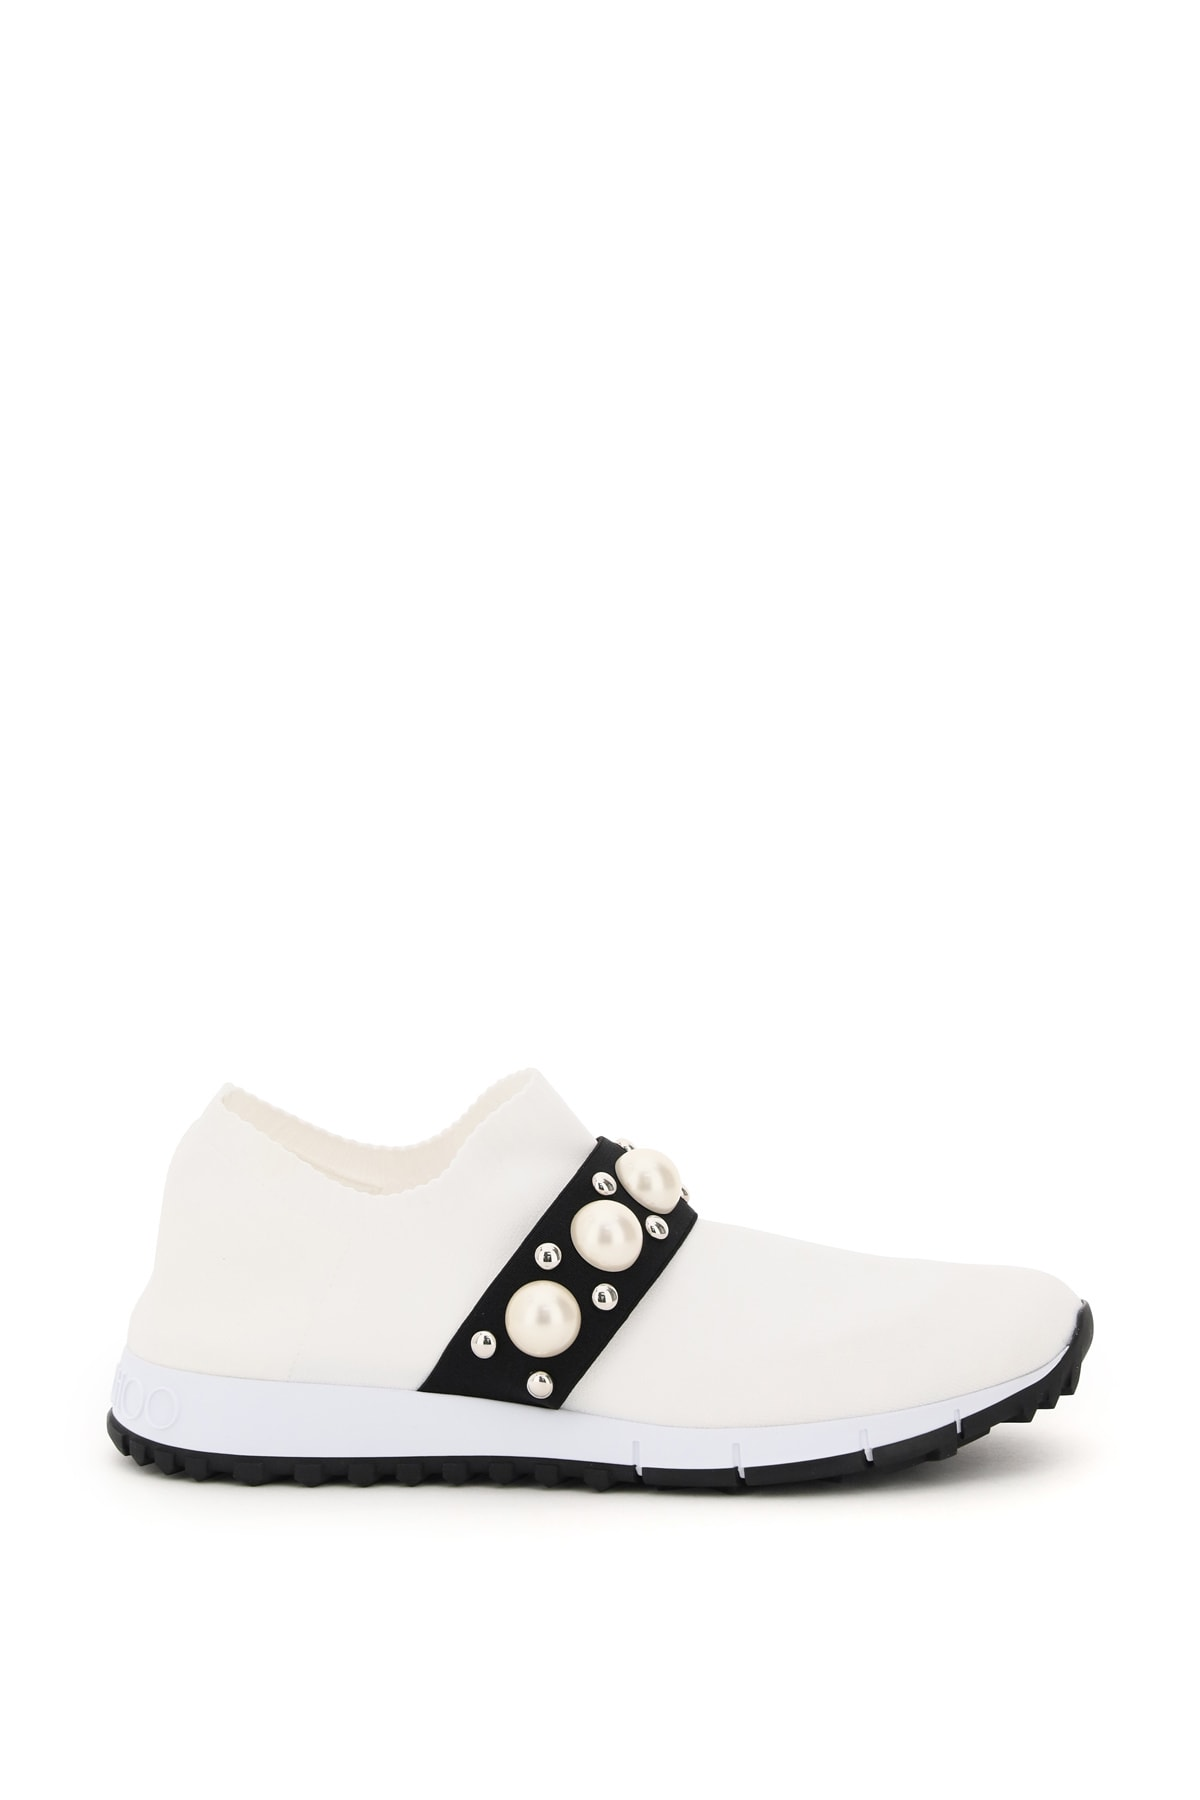 Buy Jimmy Choo Verona Sneakers Pearls And Studs online, shop Jimmy Choo shoes with free shipping